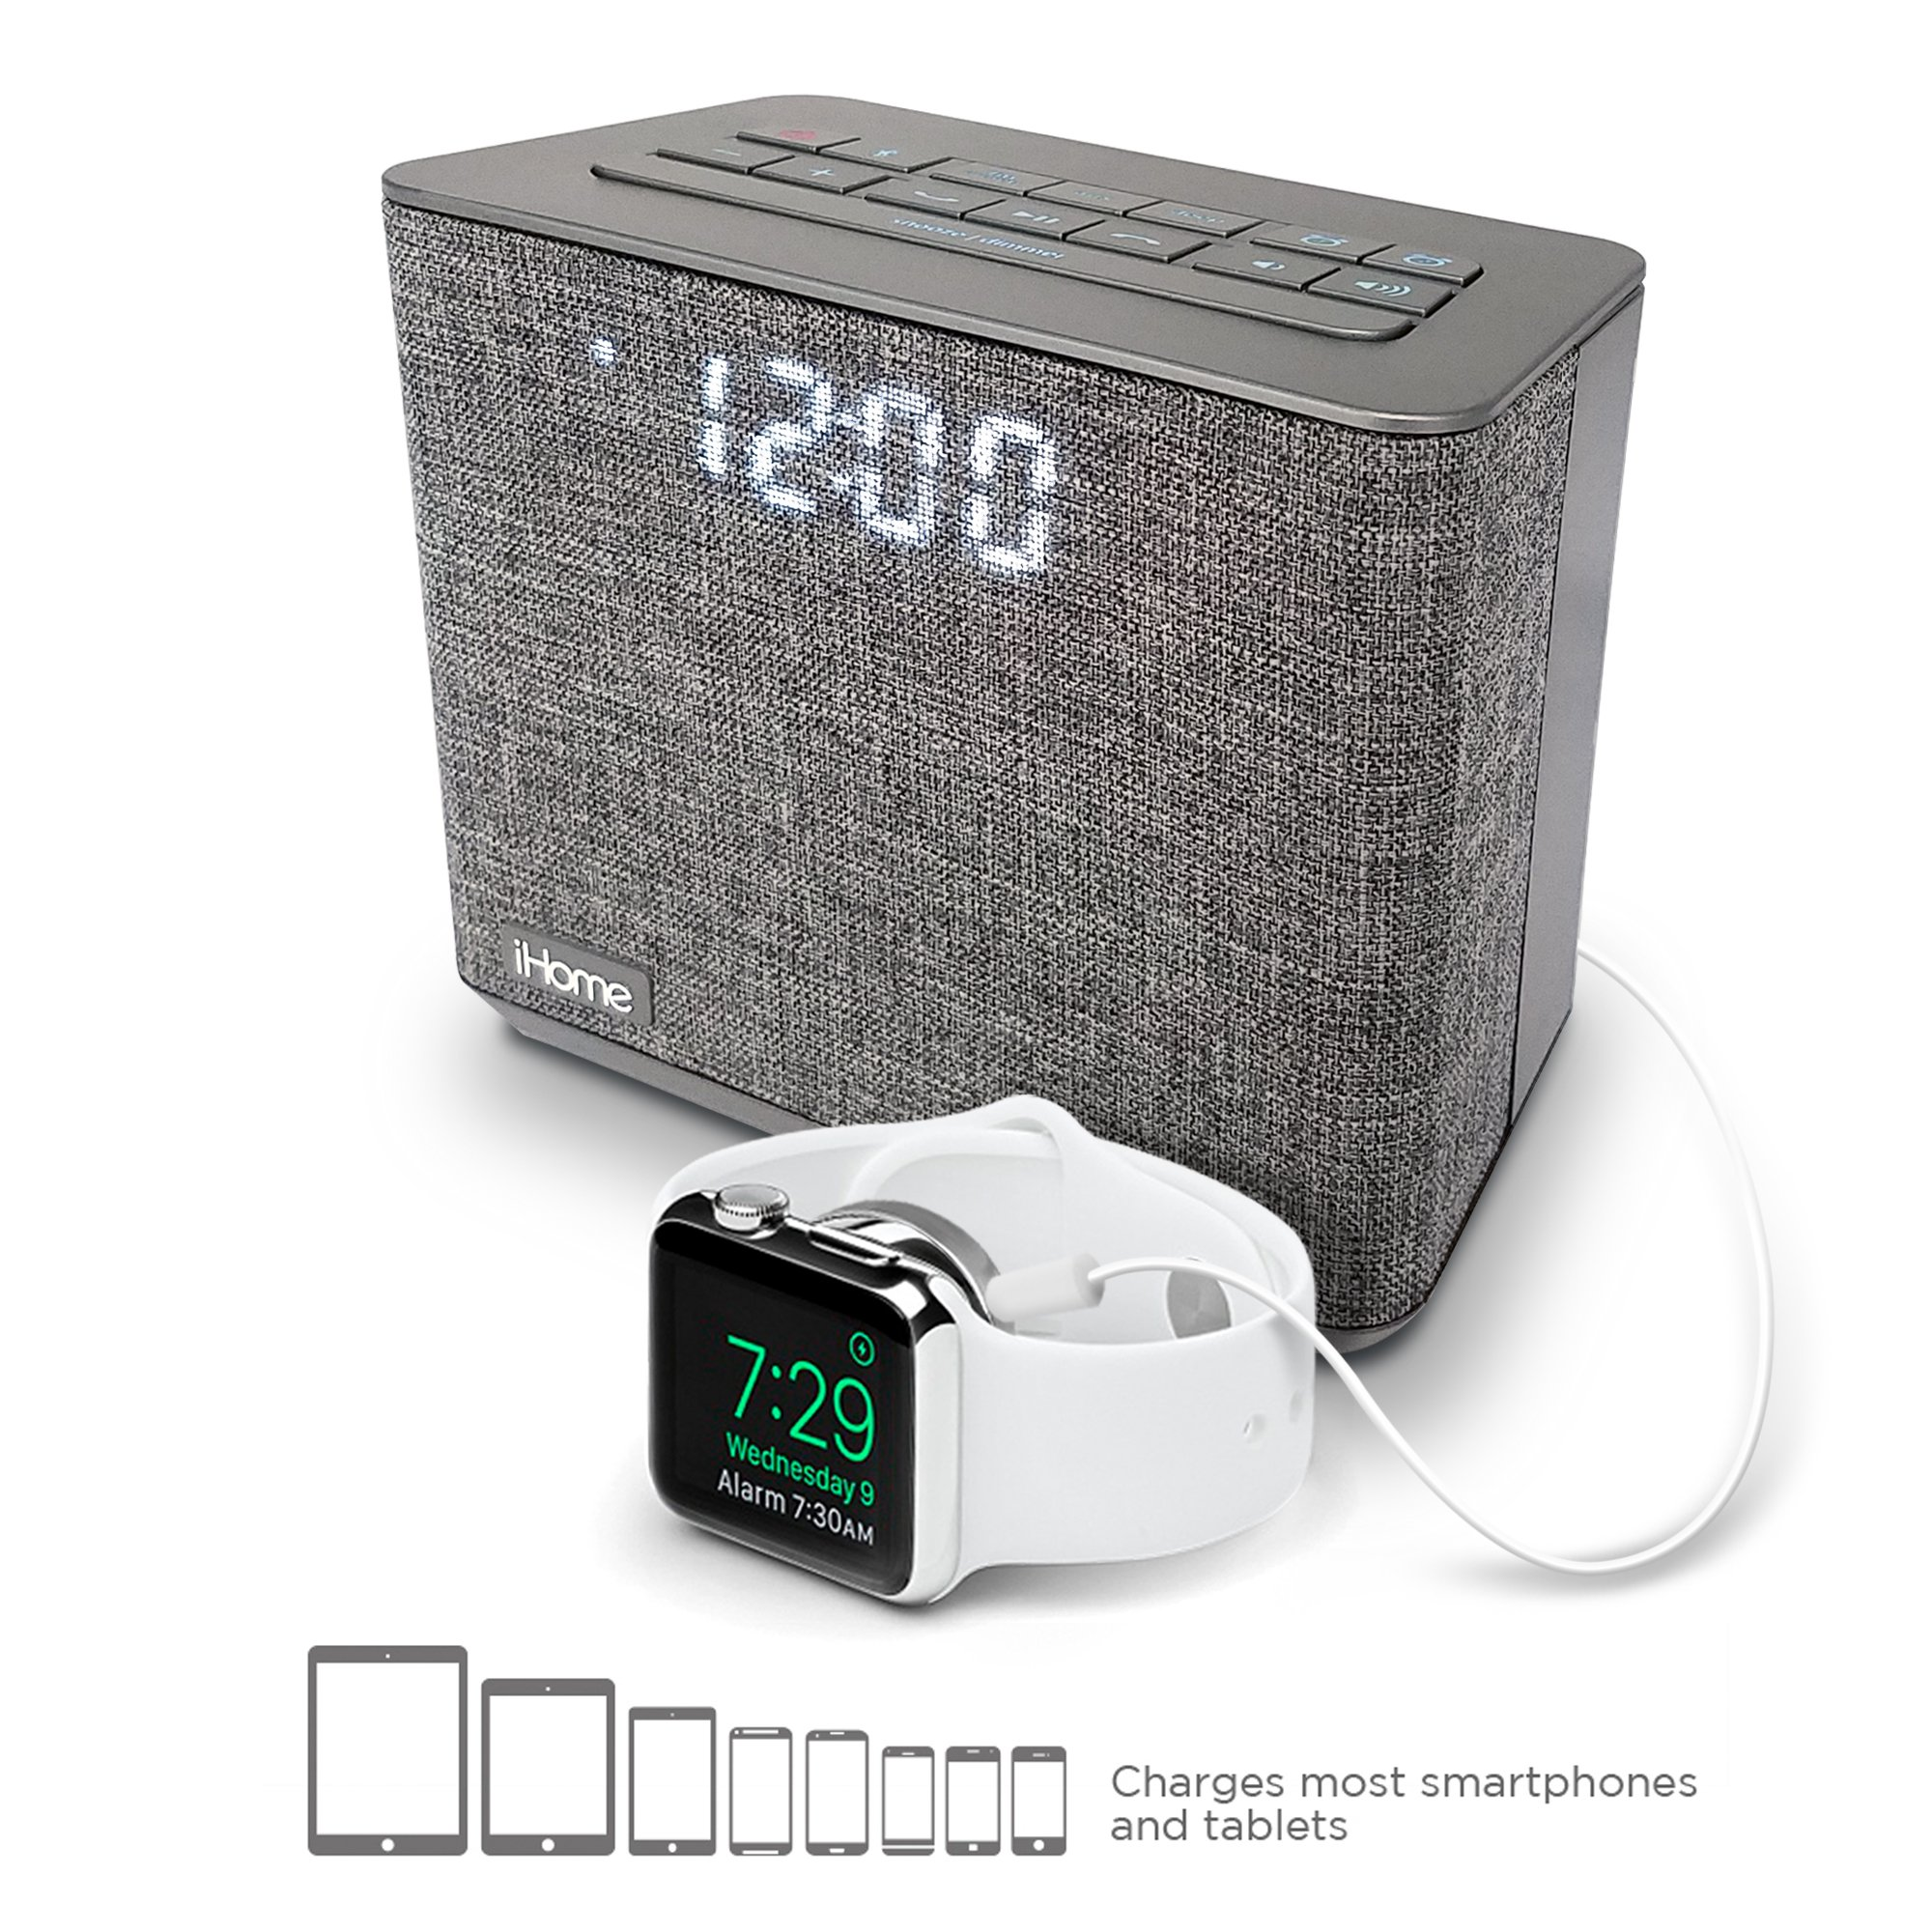 iHome Bluetooth Dual Alarm FM Clock Radio with Speakerphone and USB Charging Grey (iBT232)